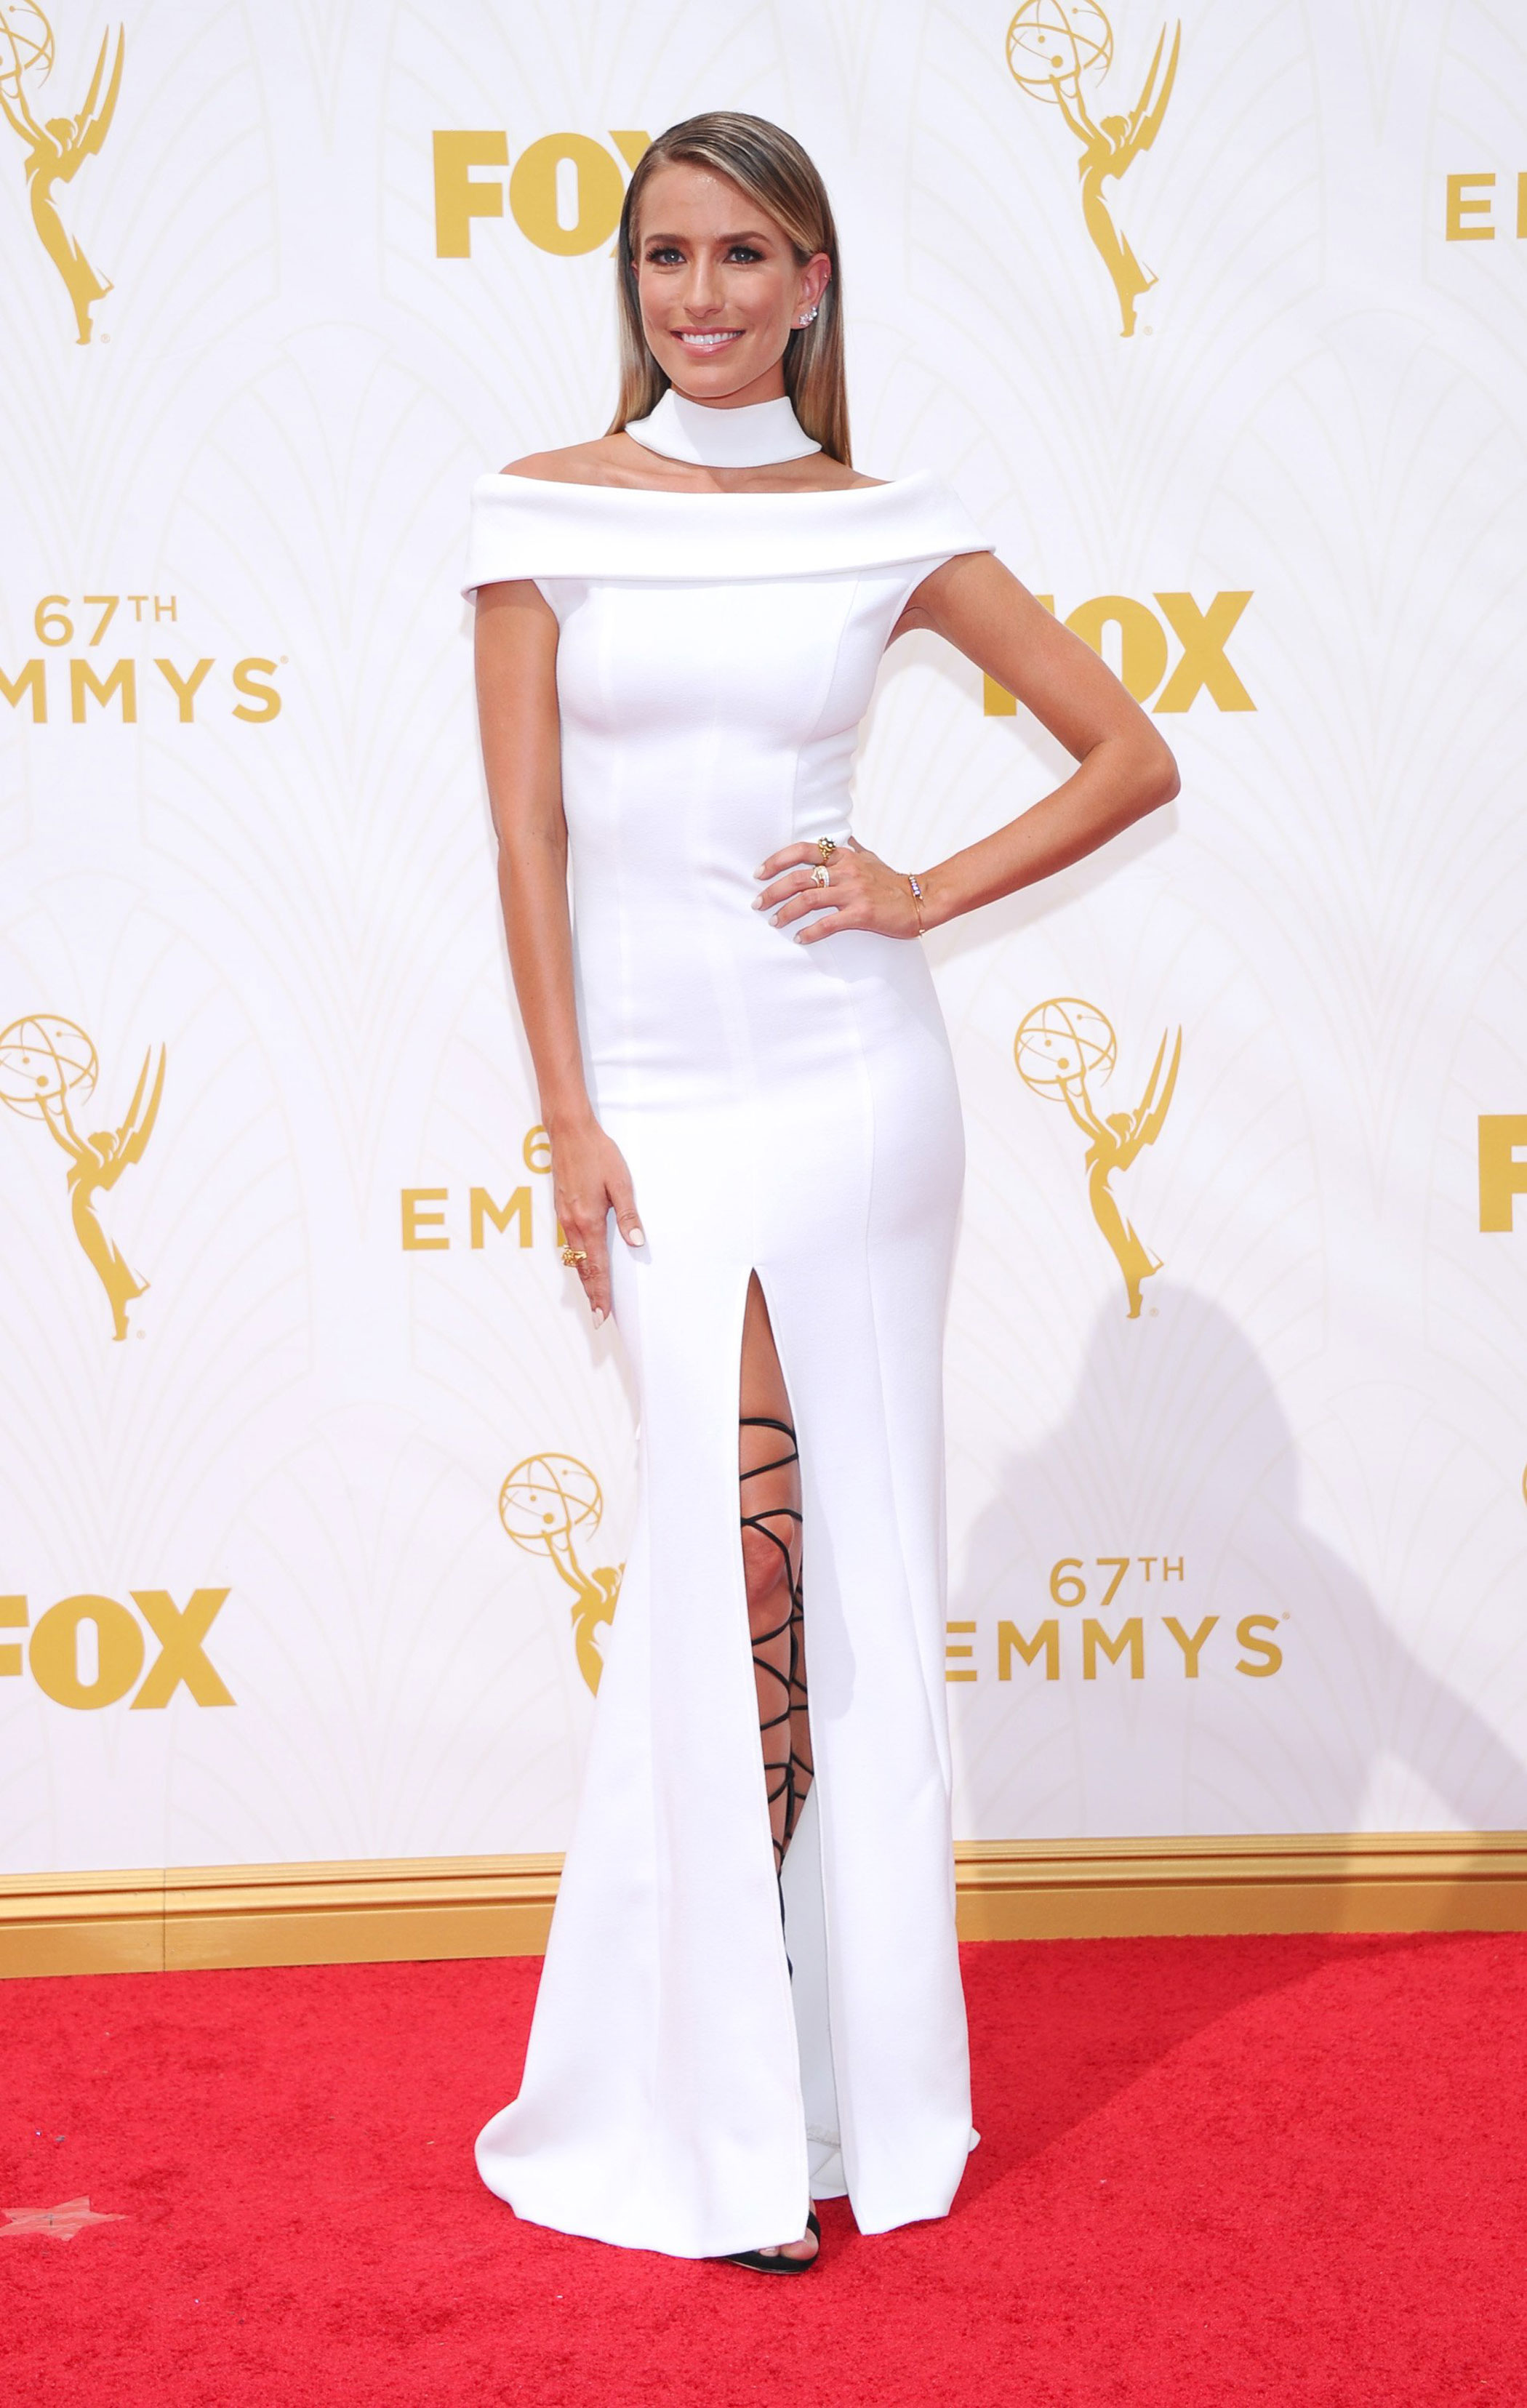 Renee Bargh at the 67th Emmy Award on Sept. 20, 2015 in Los Angeles.